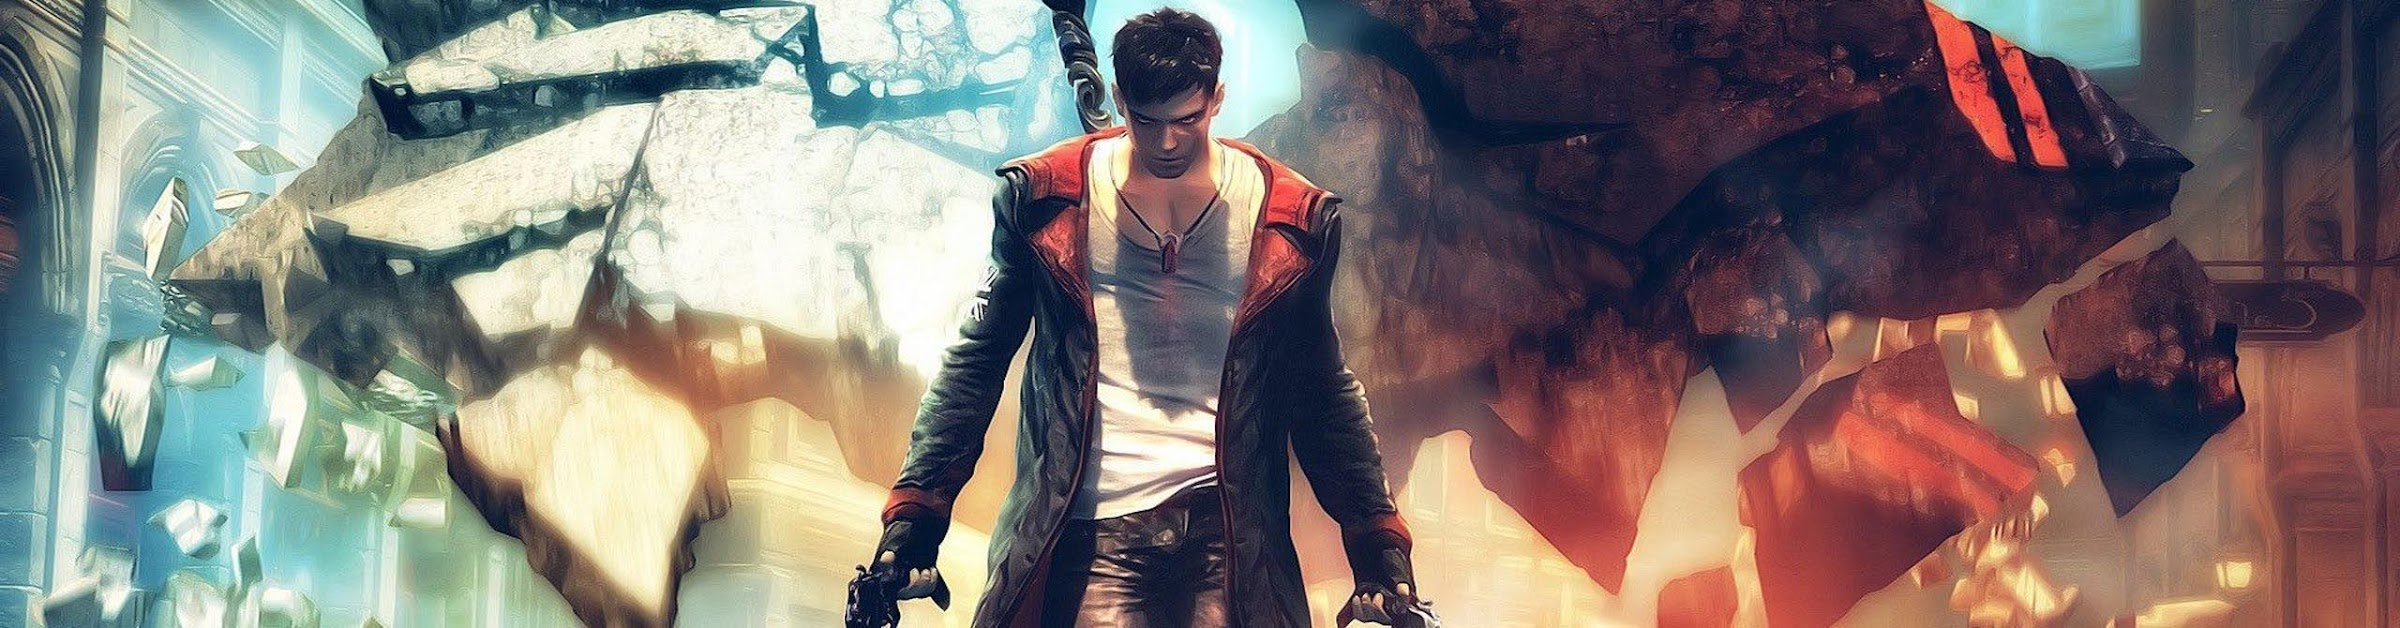 DMC Devil May Cry Việt Ngữ